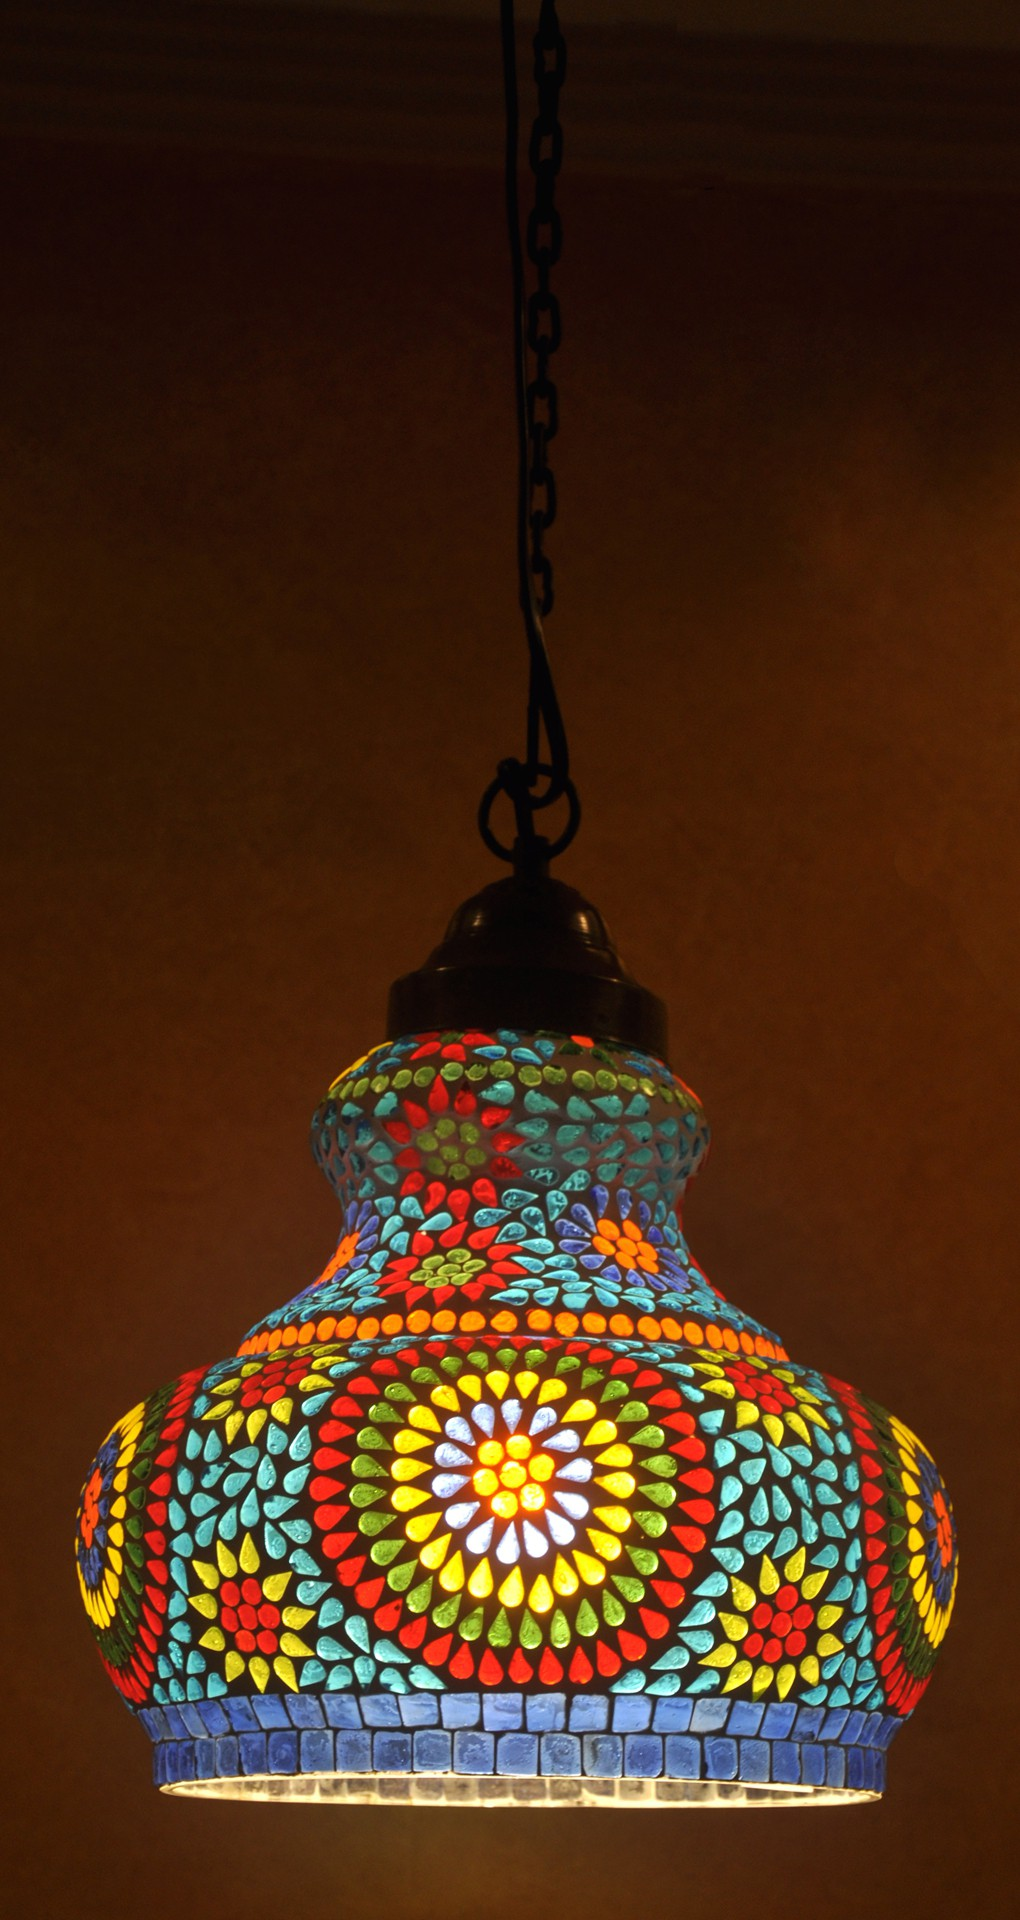 Lal Haveli Decorative Moroccan Ceiling Light Hanging Lamp Blue Glass Lantern